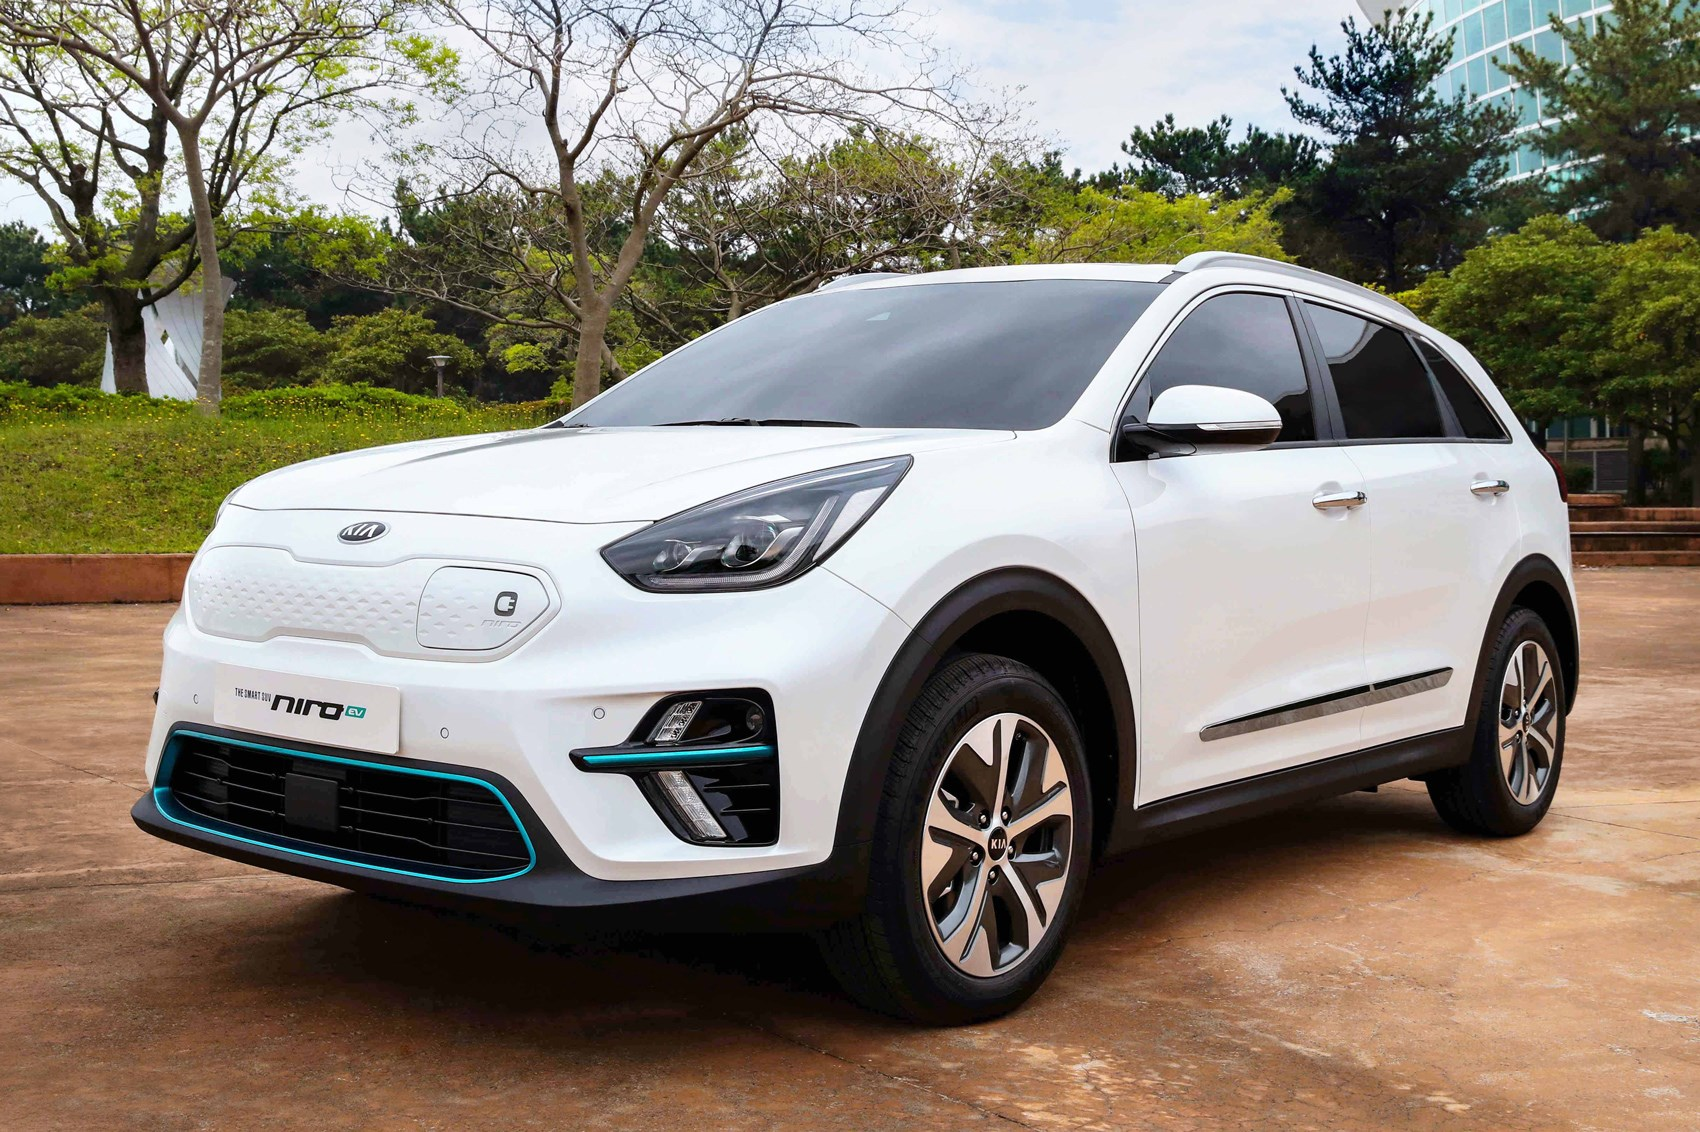 Is Hummer Coming Back In 2018? >> New Kia Niro EV: specs for all-electric crossover revealed ...